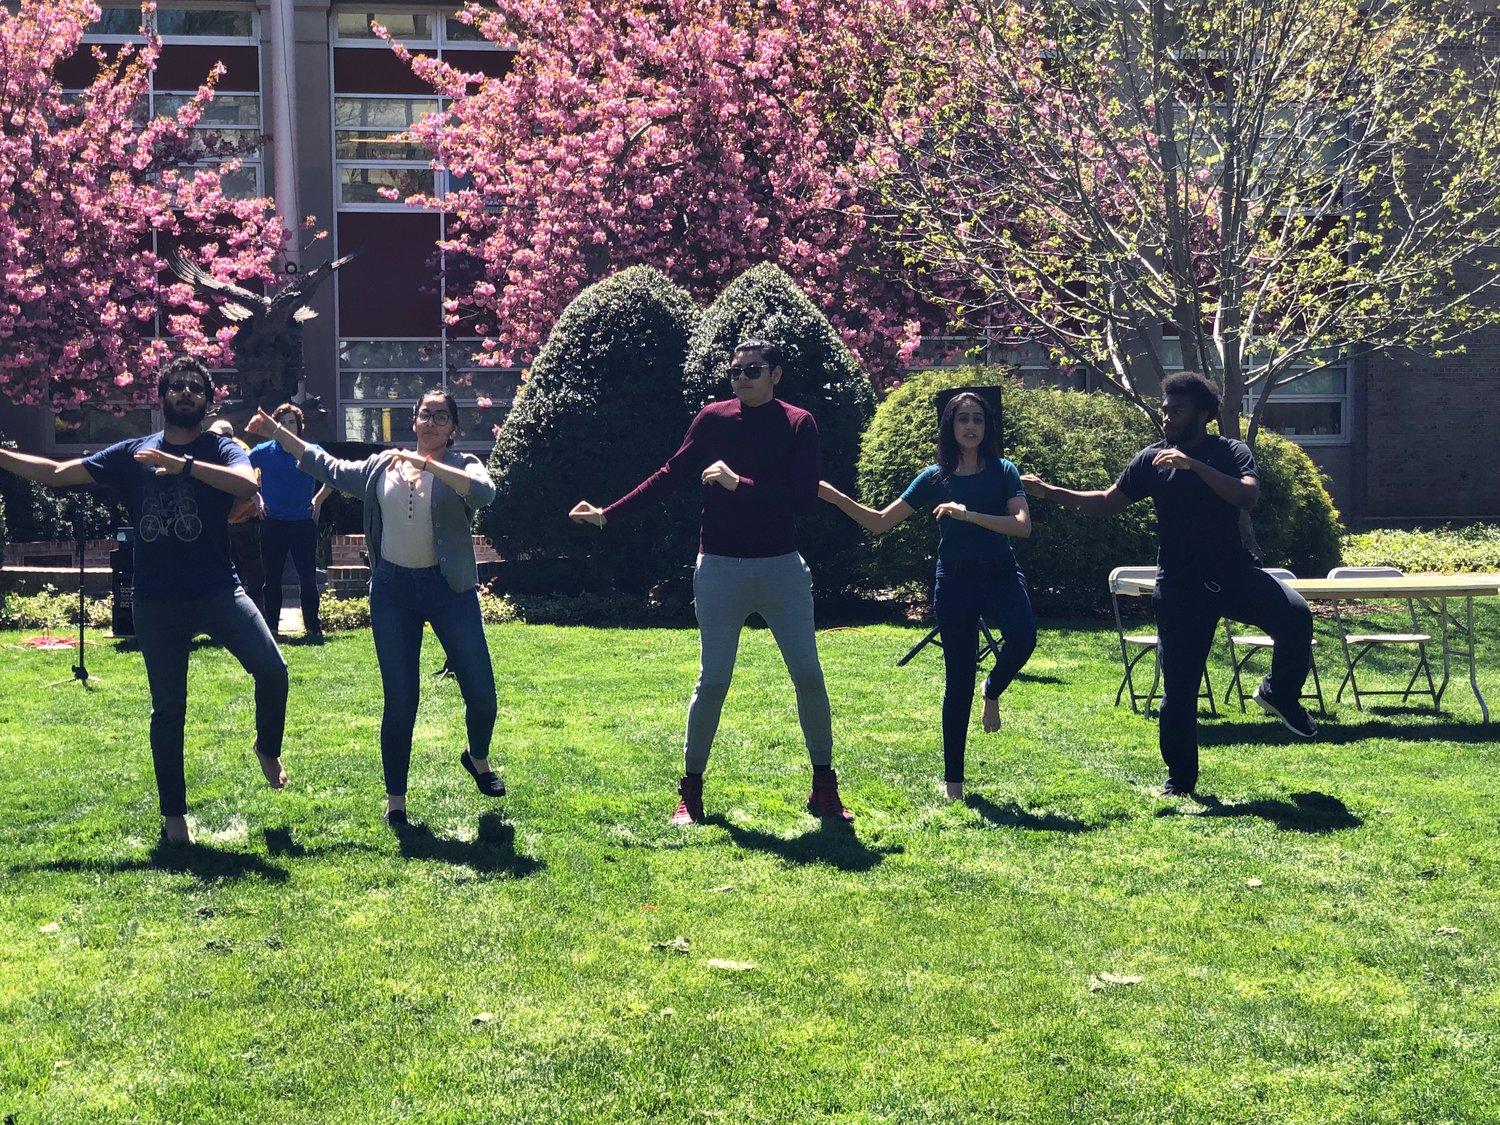 A Hofstra dance group for entertainment at the Earth Day event.